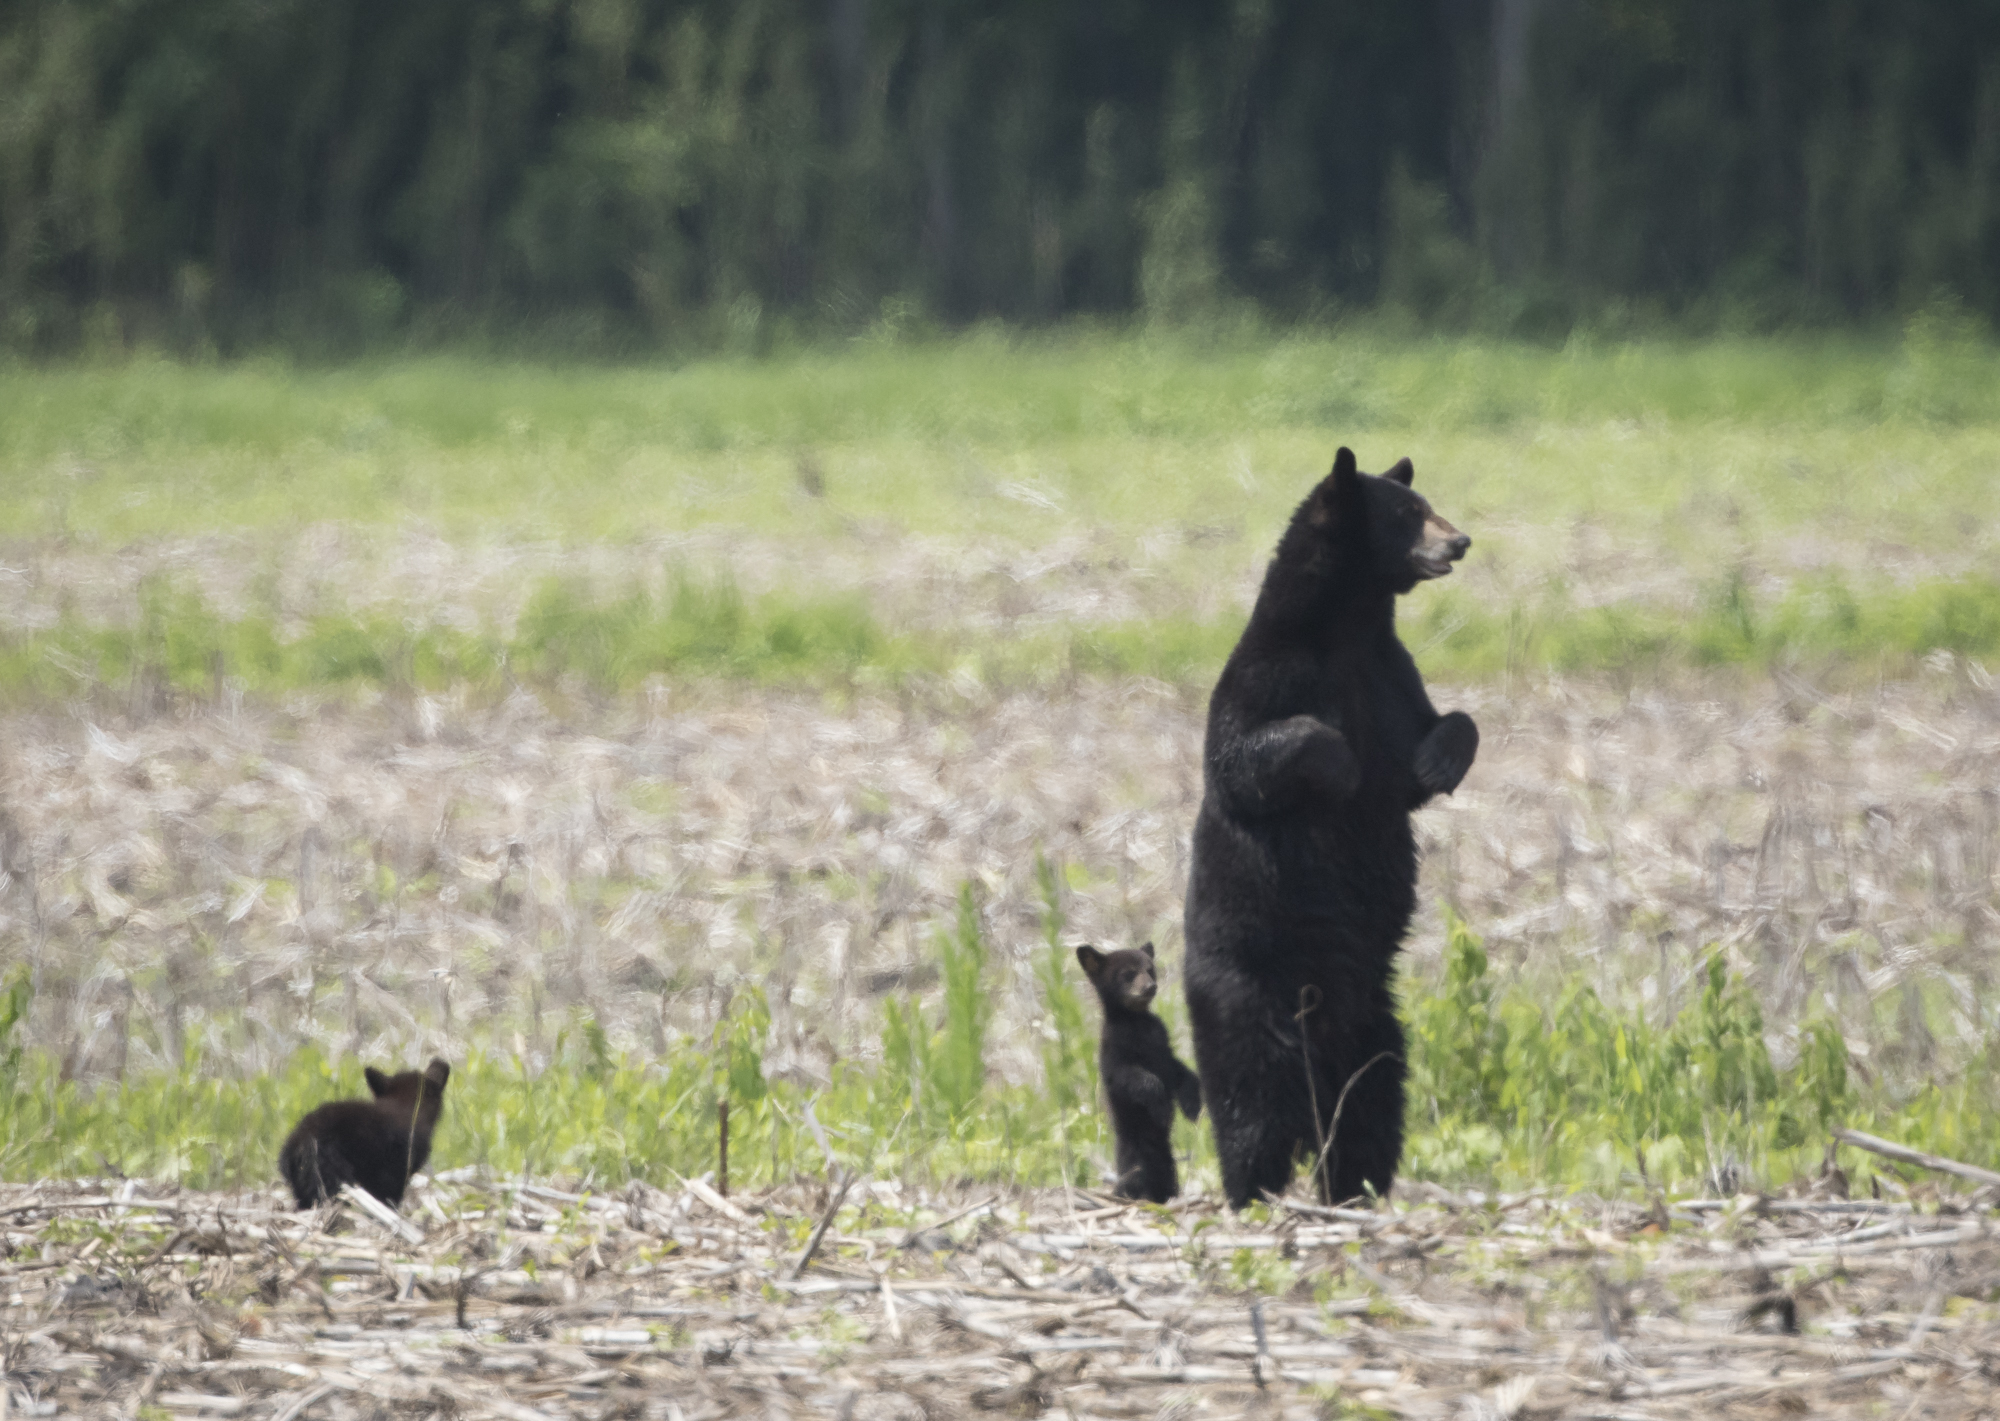 Bl;ack bear sow with cubs standing